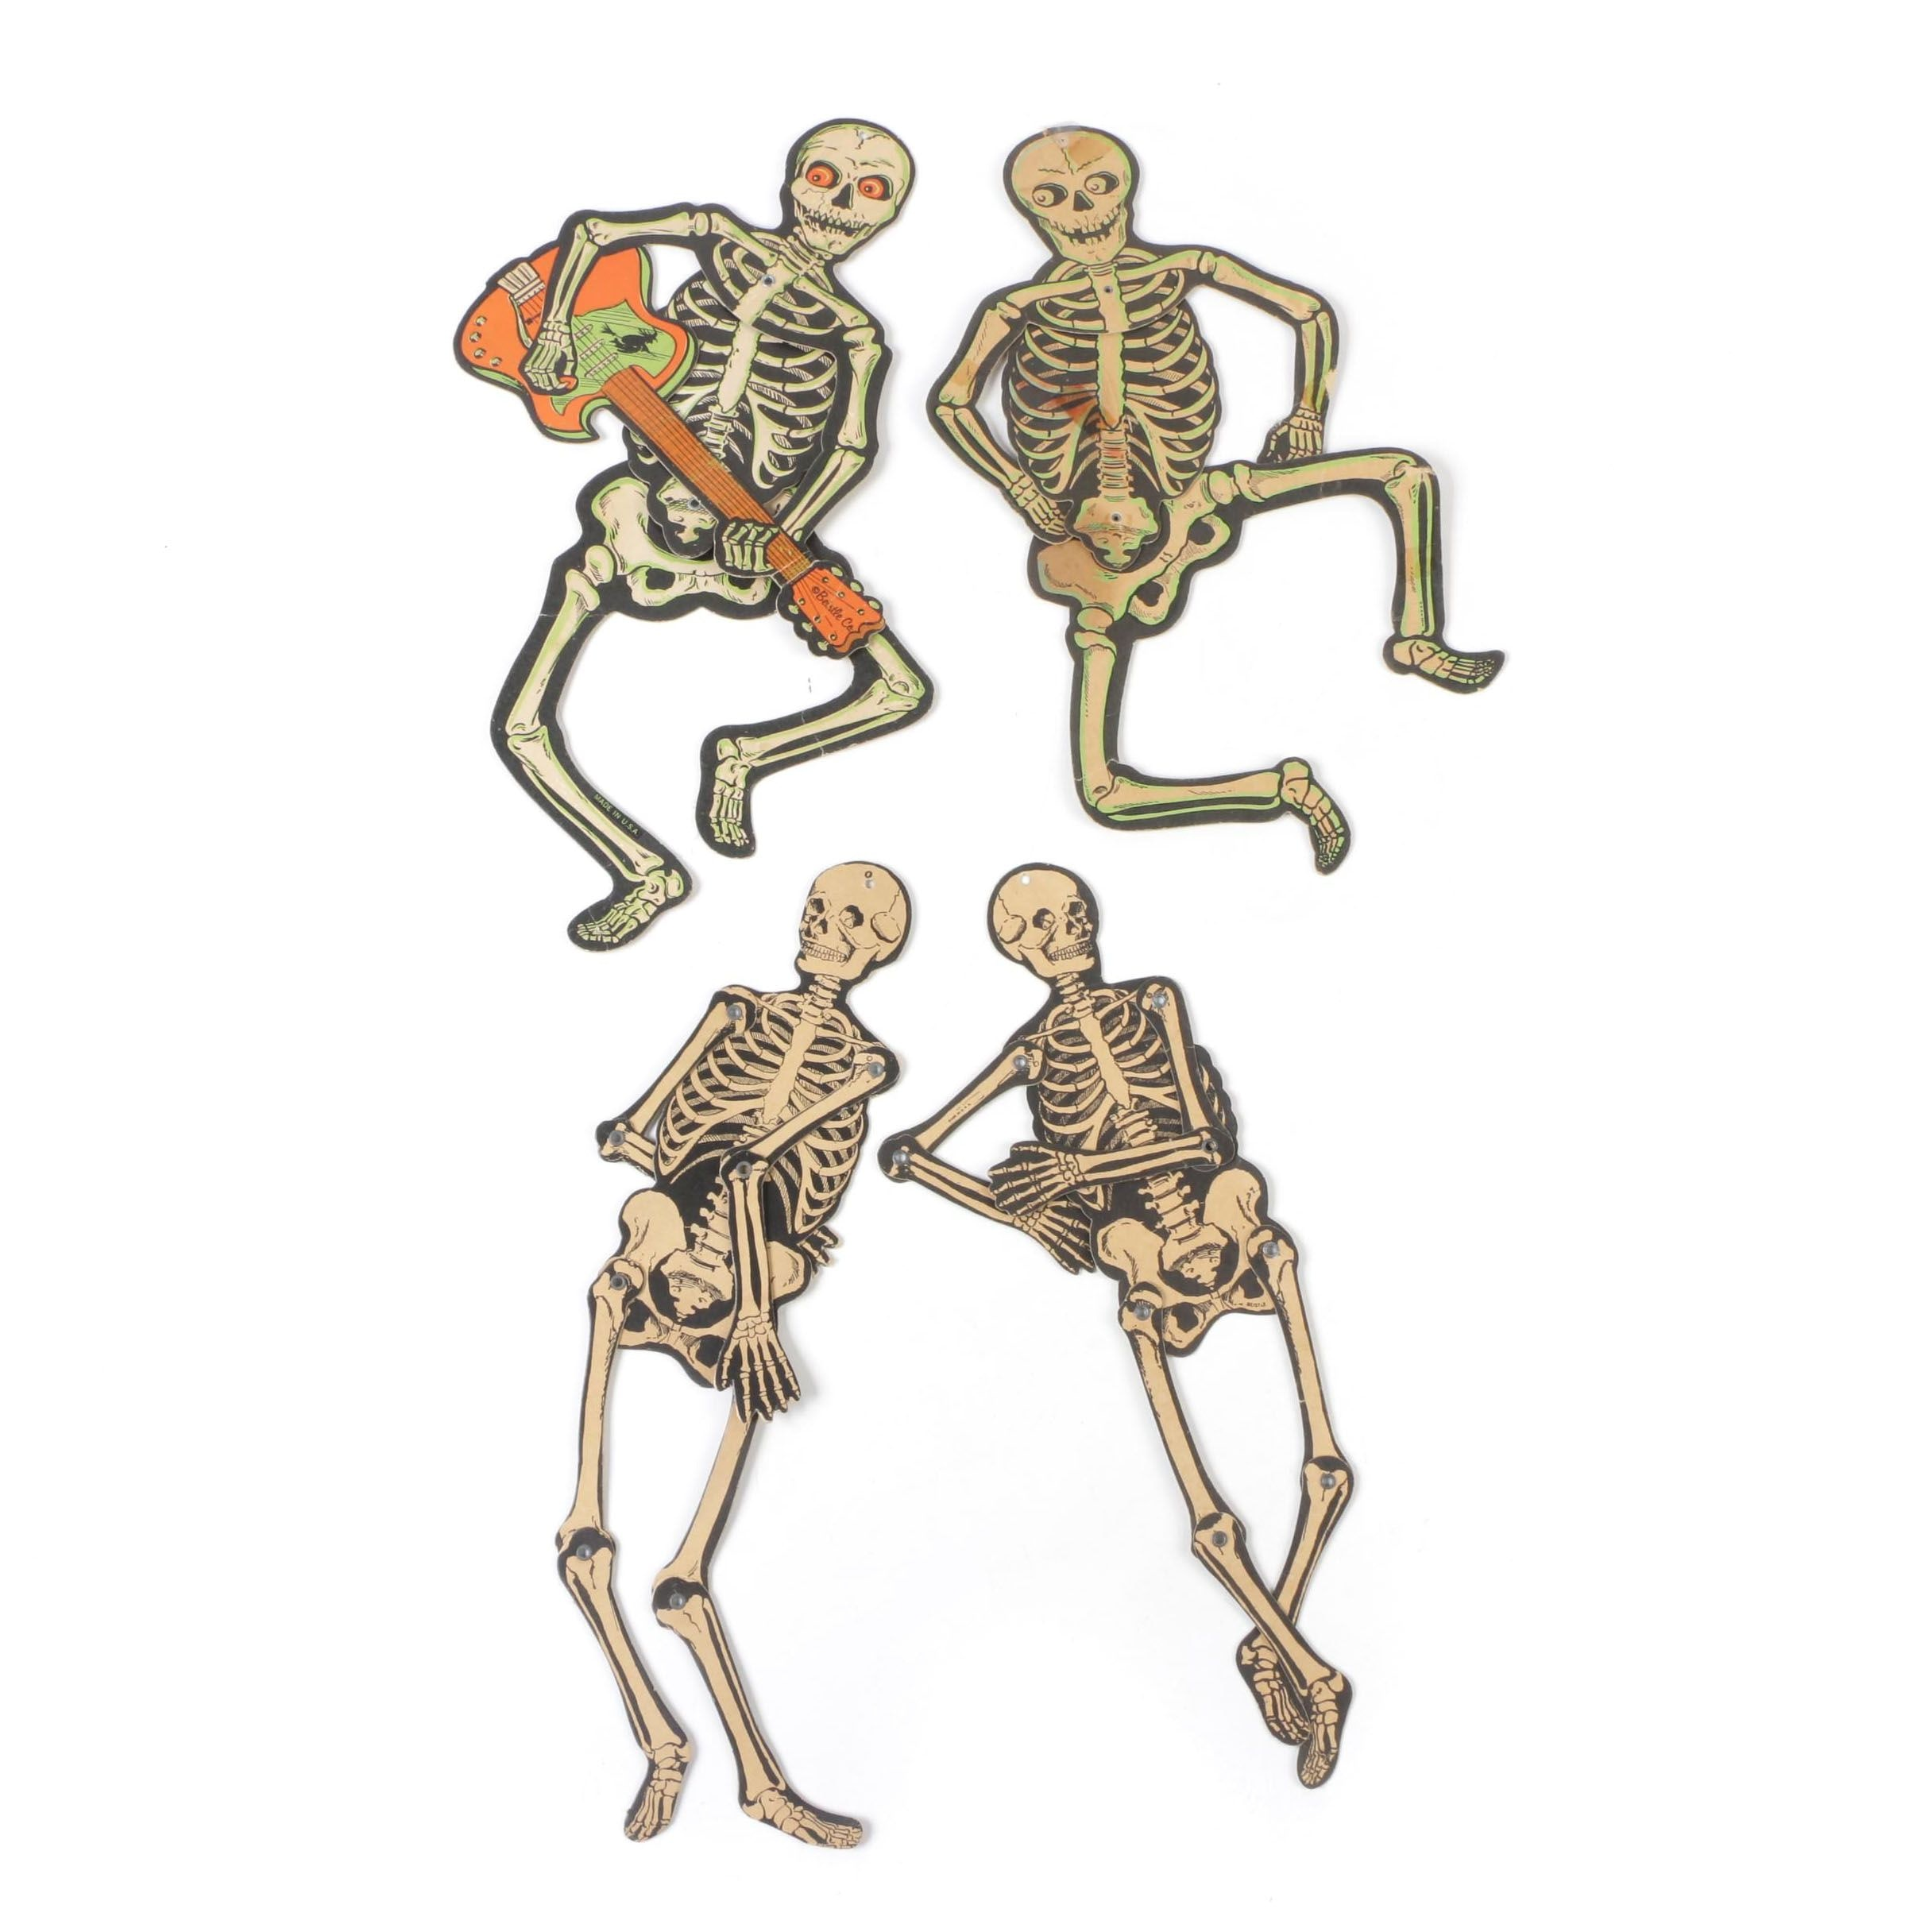 Beistle Jointed Cardboard Skeleton Halloween Decorations, Mid-Century